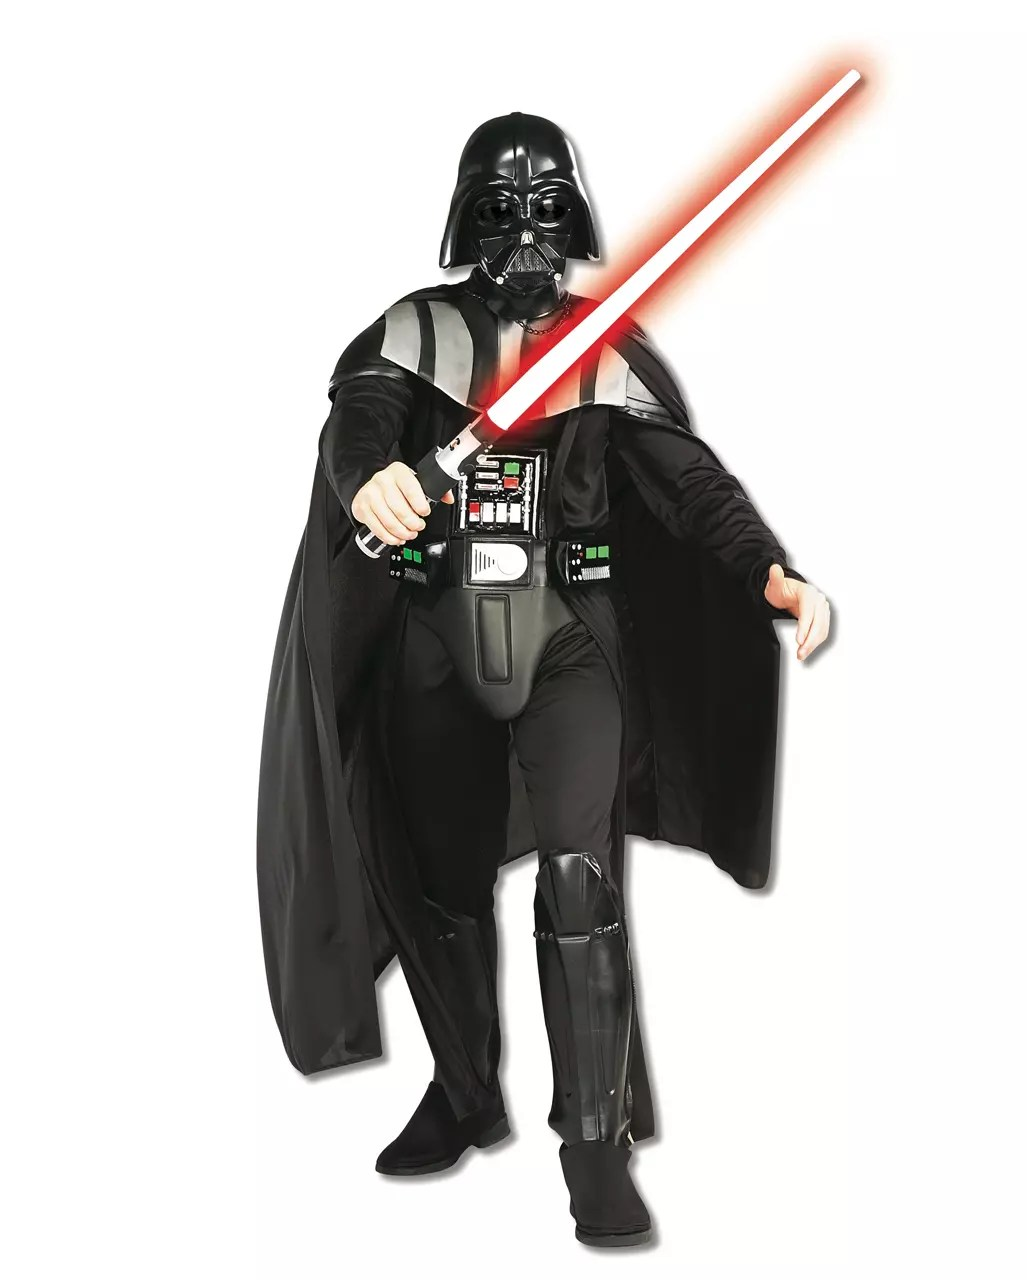 Karneval Kostüm Star Wars Darth Vader Kostüm Dlx Star Wars Kostüm Faschings